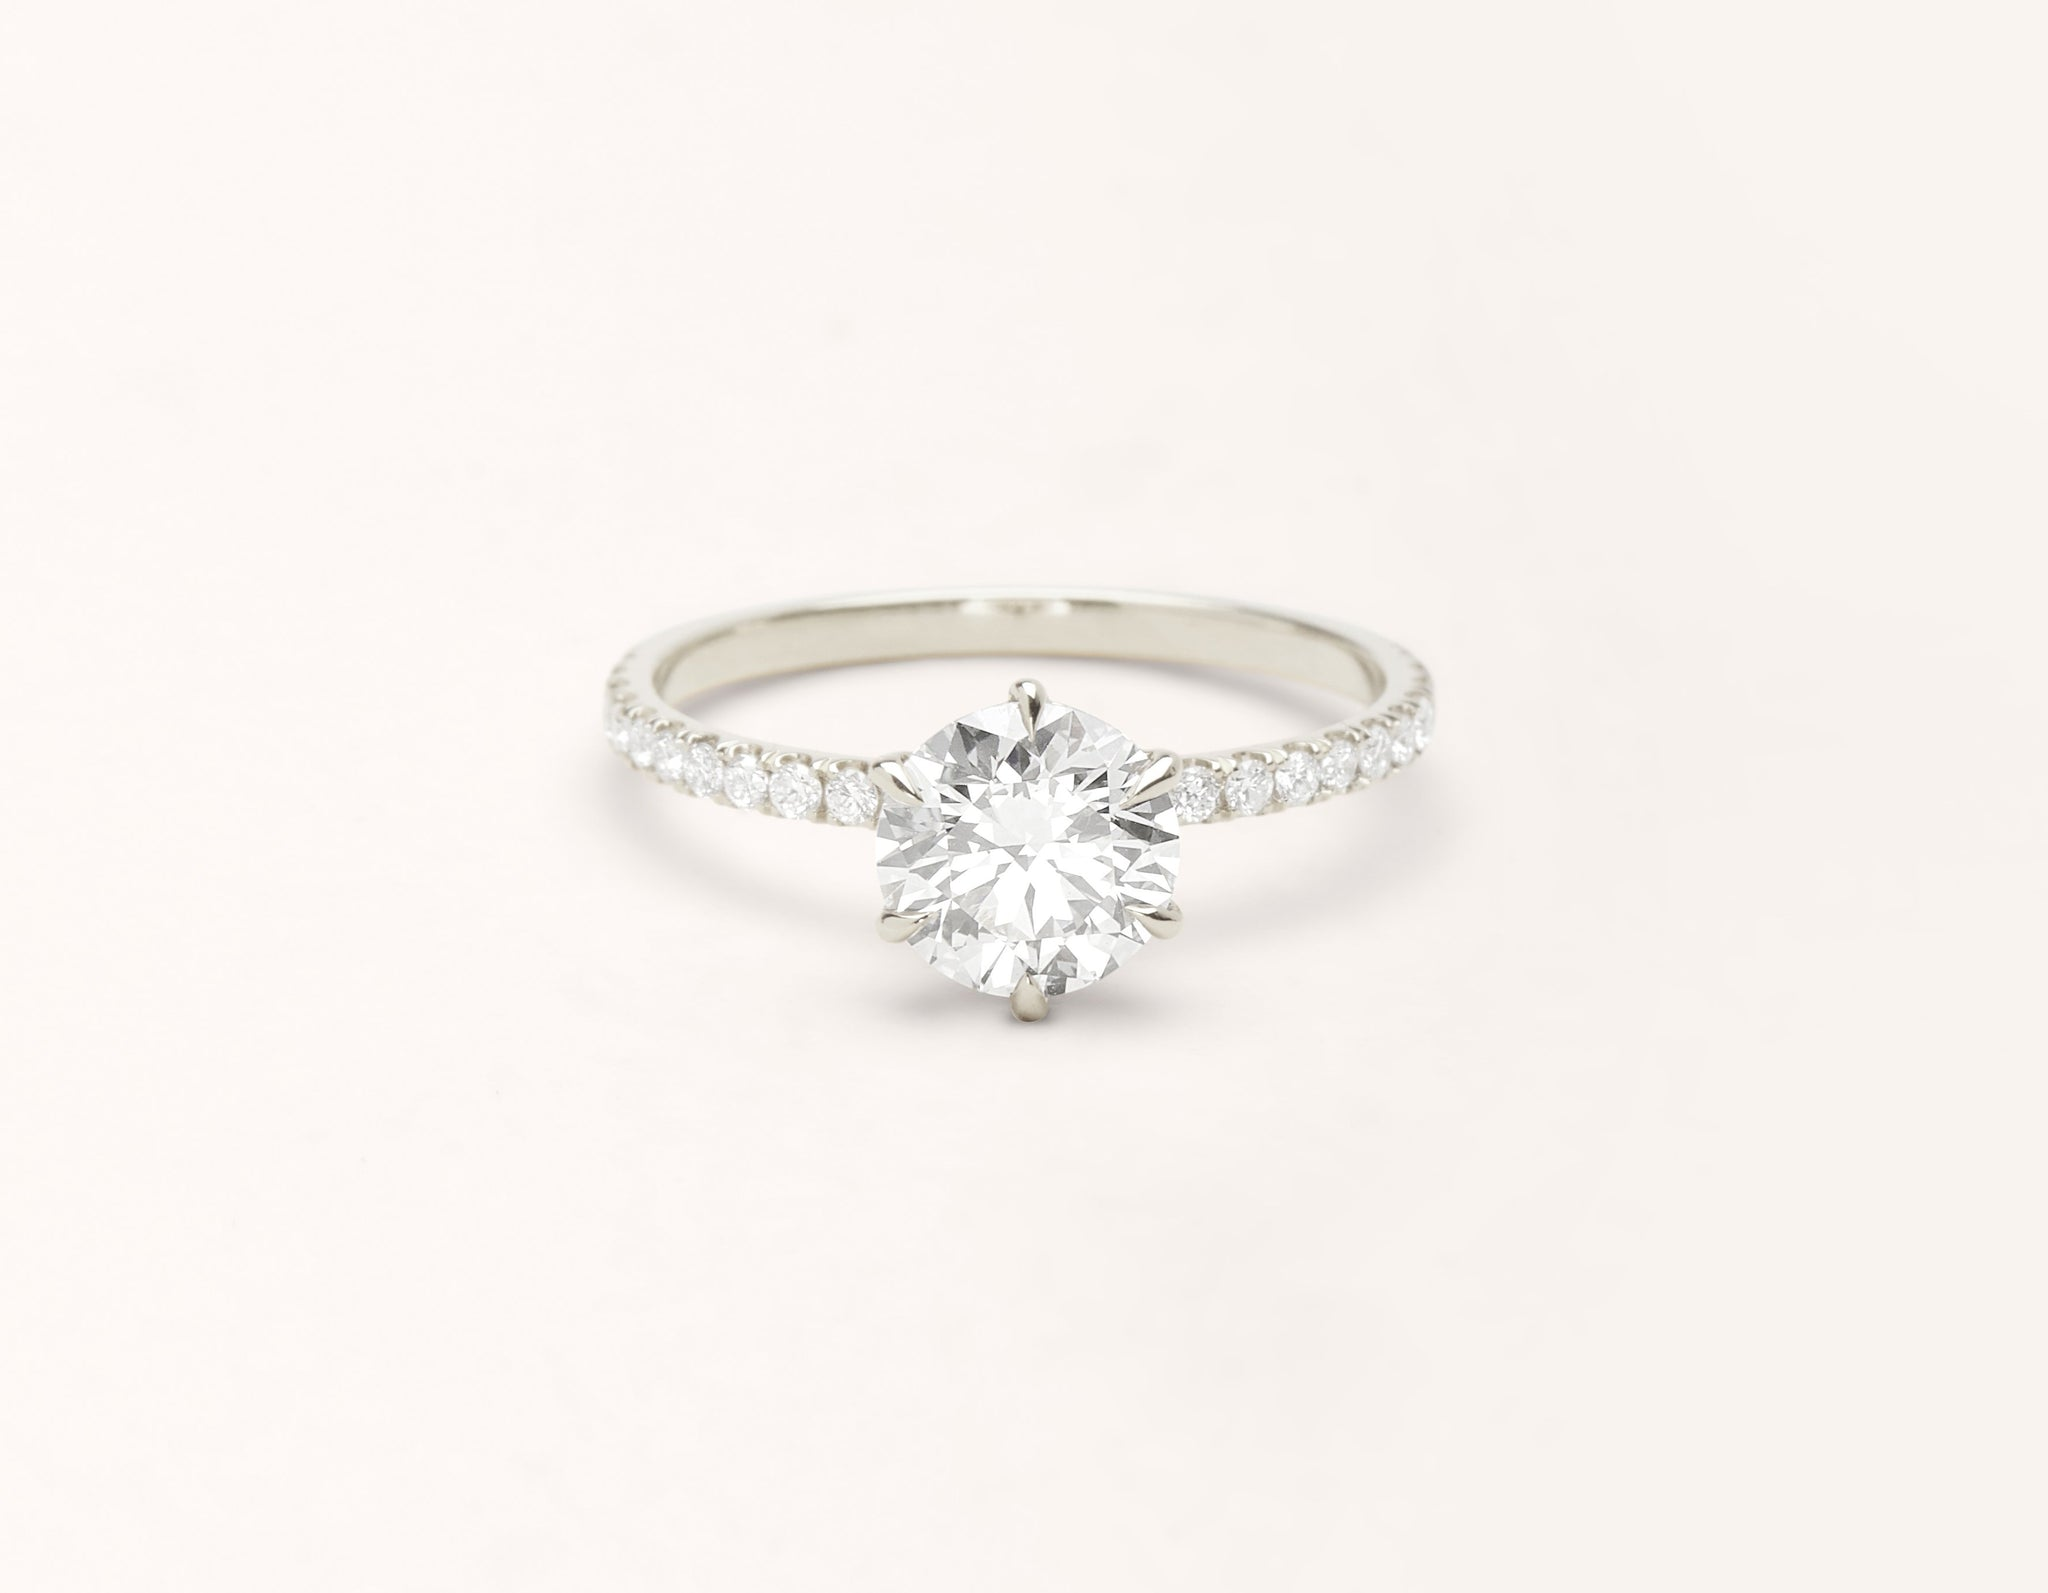 Minimalist 18k solid white gold The Solitaire pave engagement ring round brilliant cut 1 ct diamond Vrai and Oro